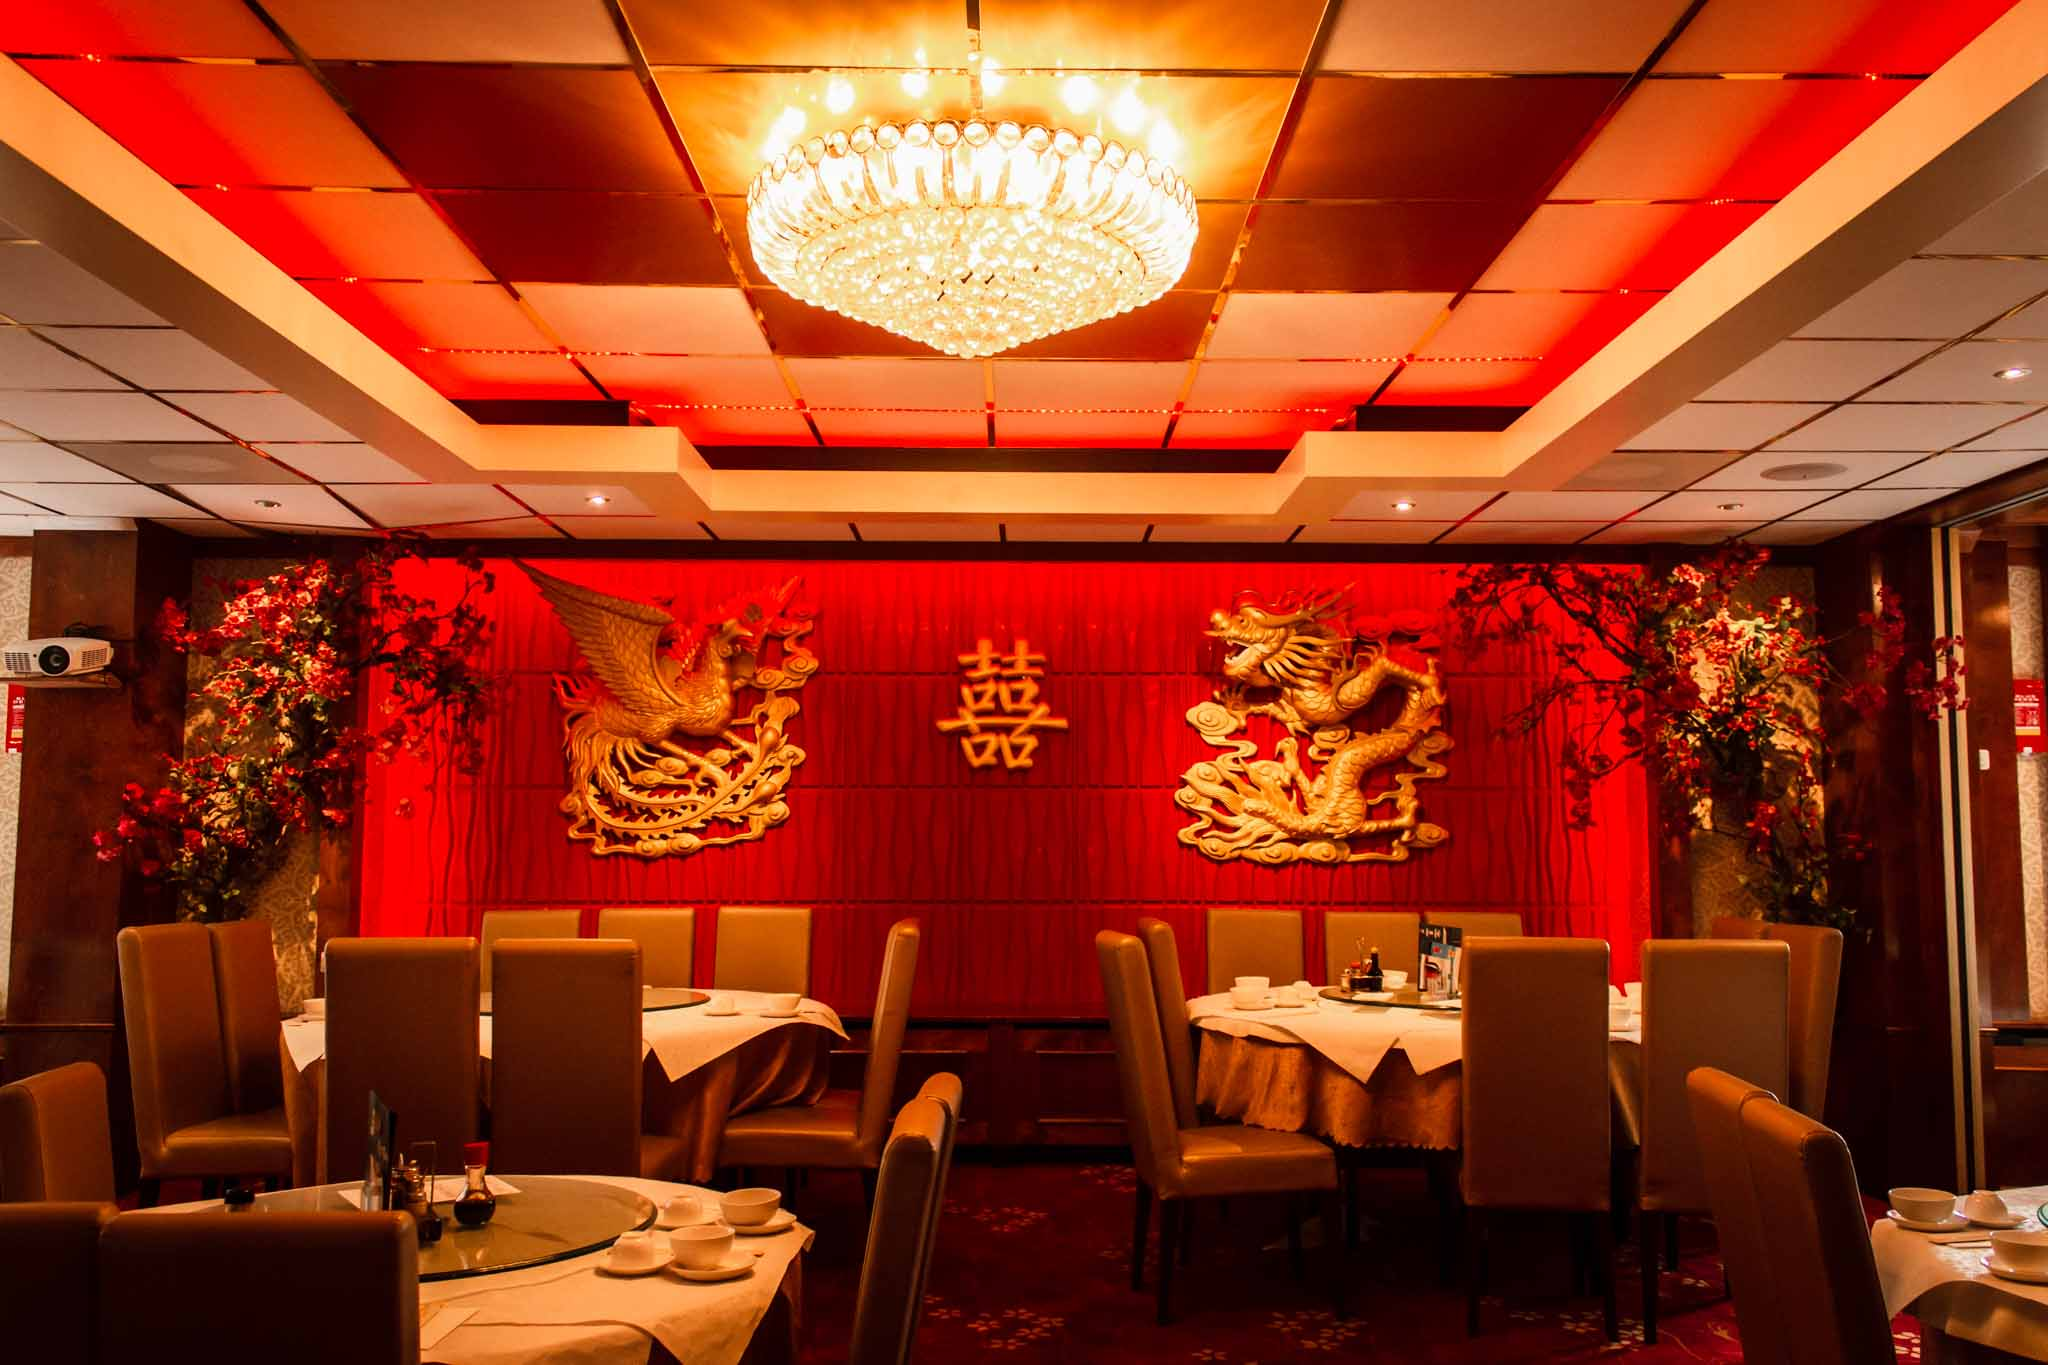 The interior of a Chinese restaurant